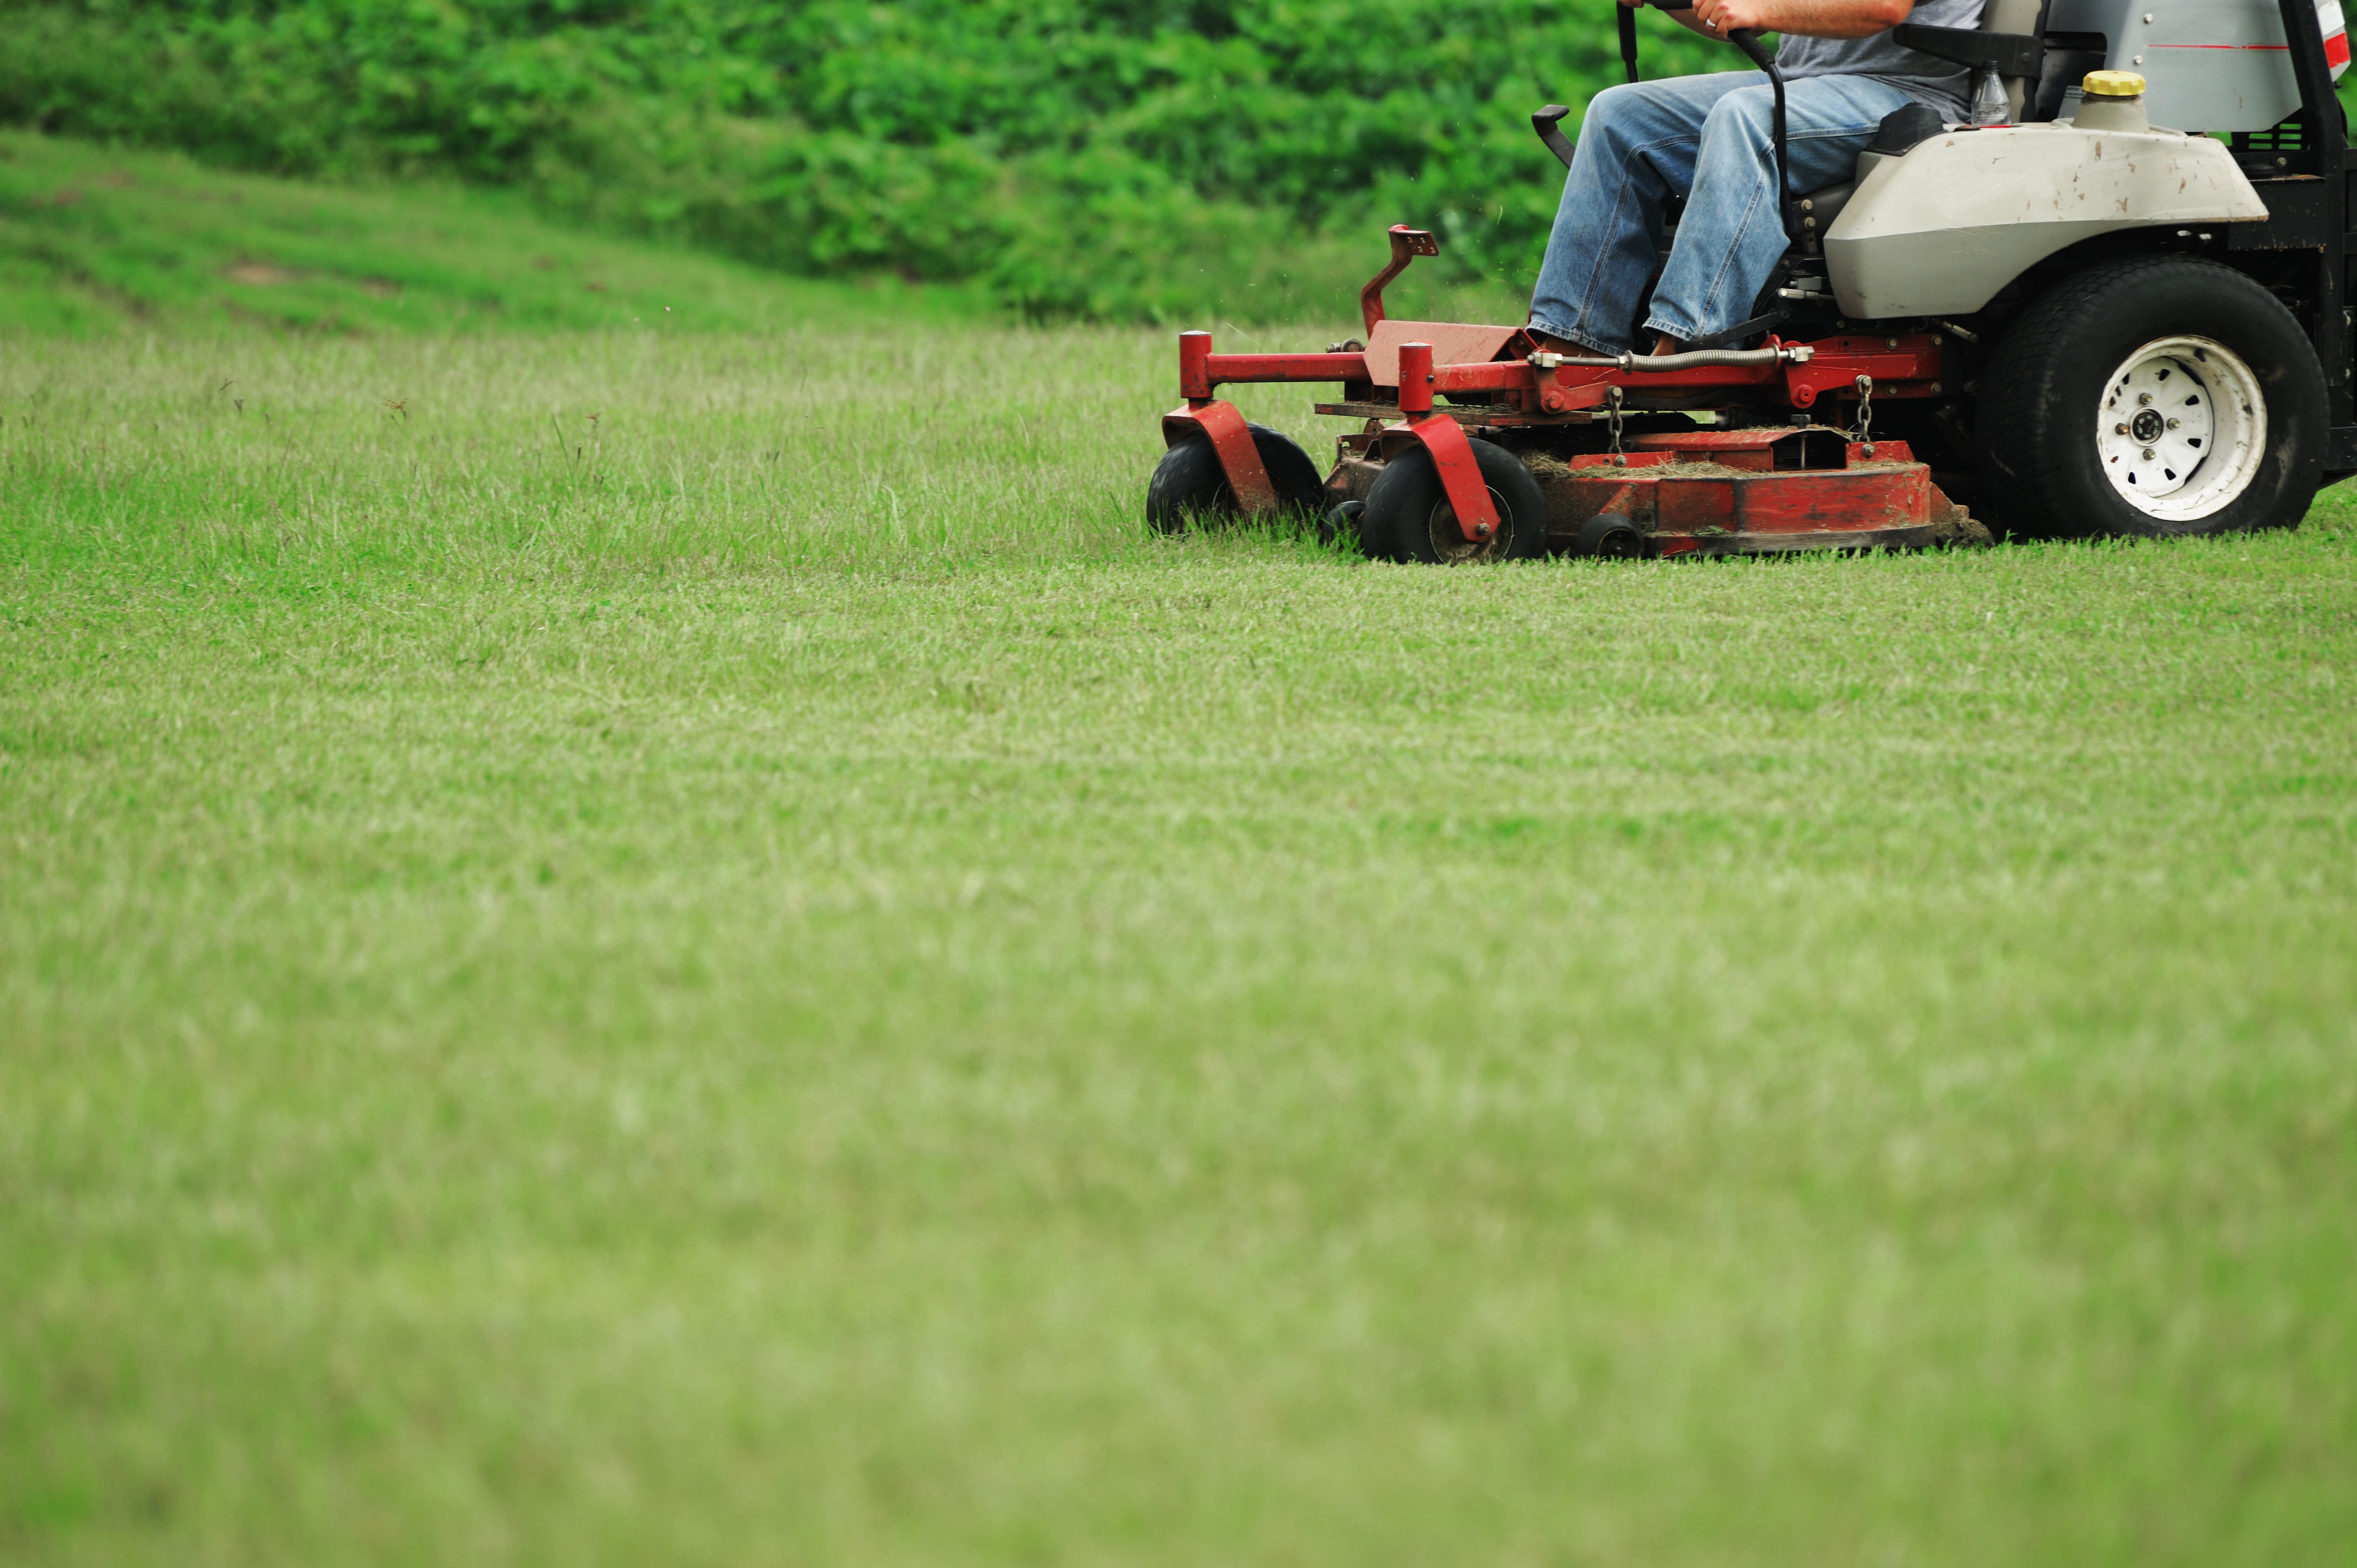 Nepa managment associates stroudsburg pennsylvania pa for Local lawn mowing services